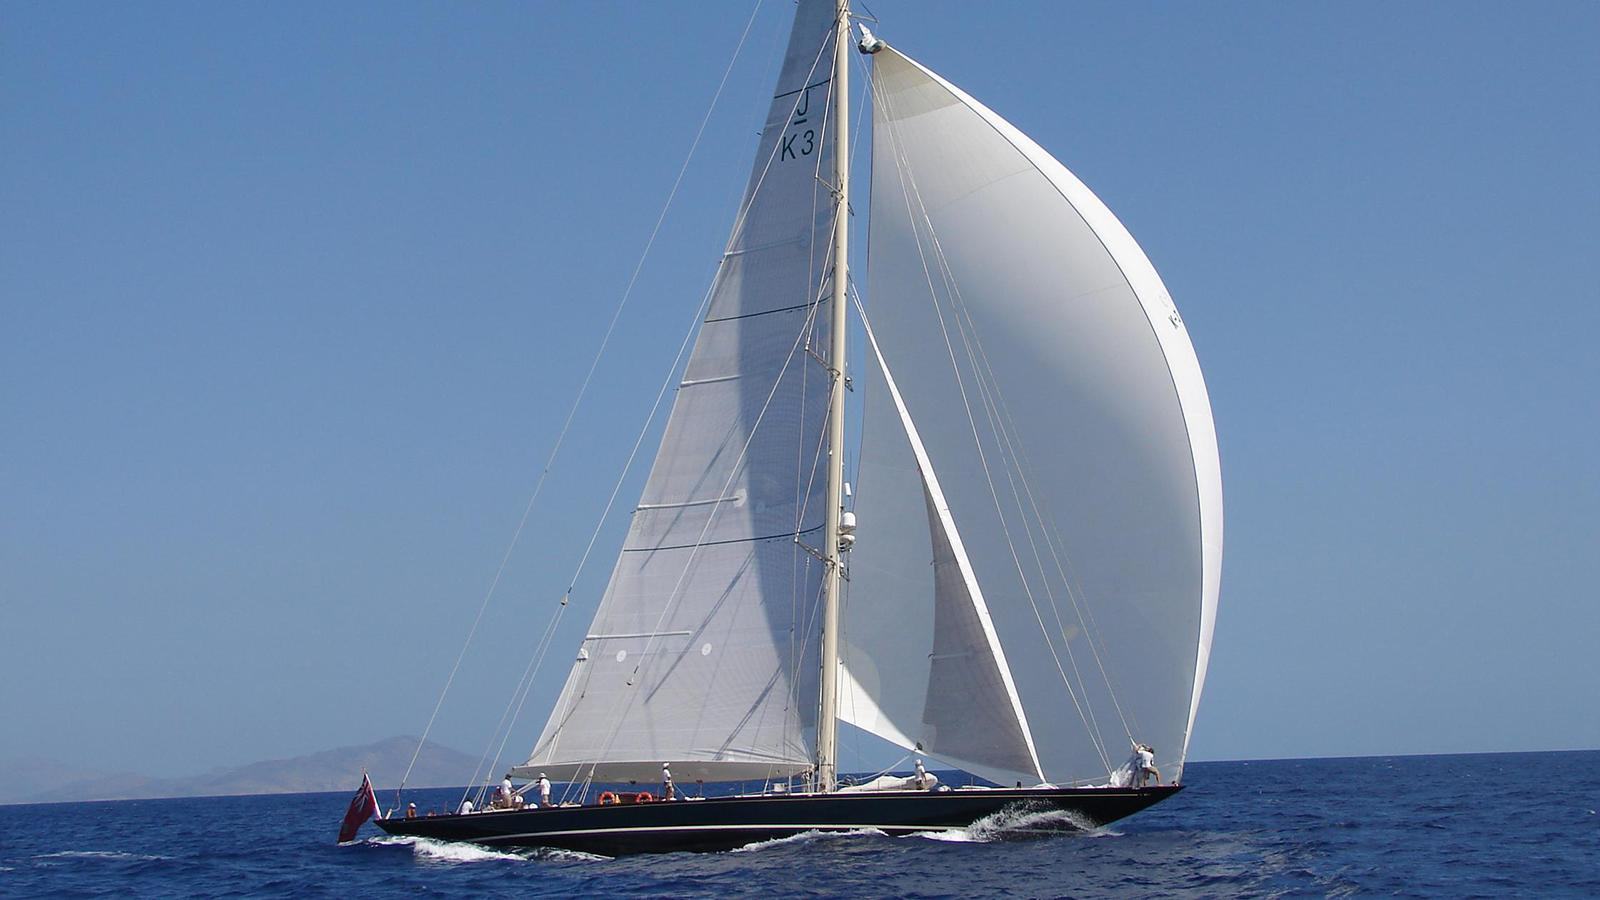 J64NZT6ASRS44UYjj5Vw_shamrock-v-best-british-superyacht-1600x900